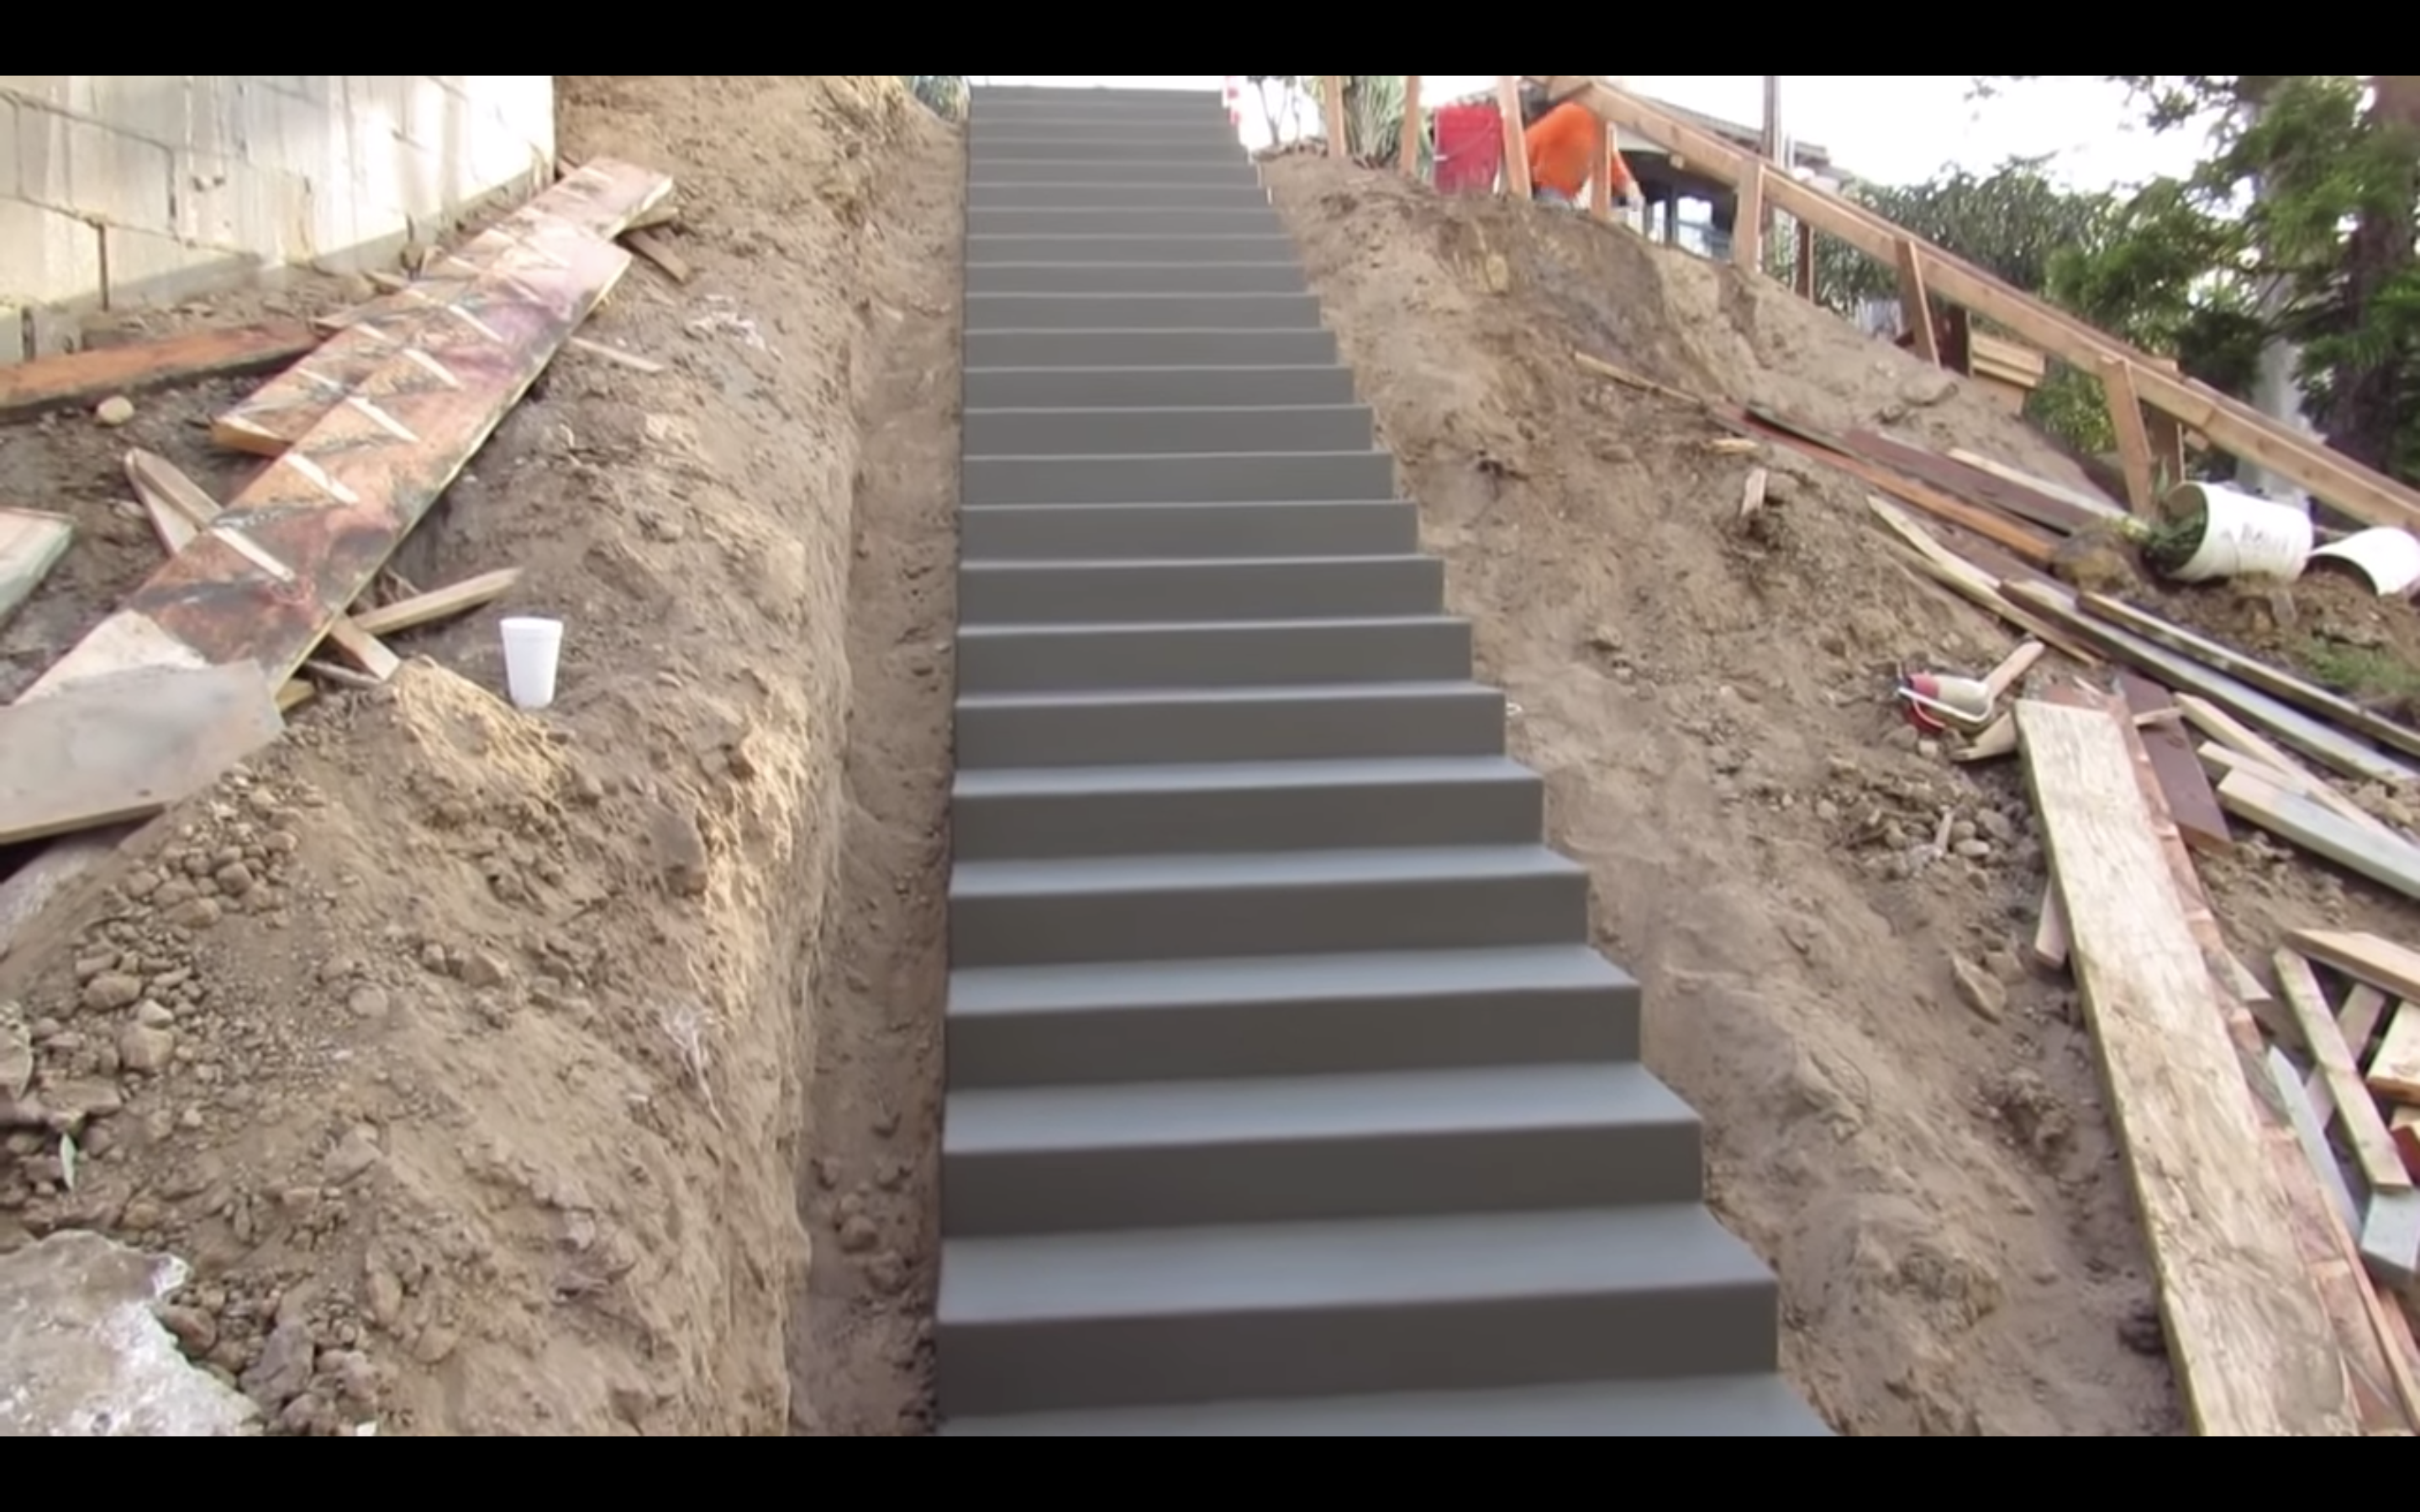 Watch Contractors Hypnotically Build a Perfect Concrete Stairway